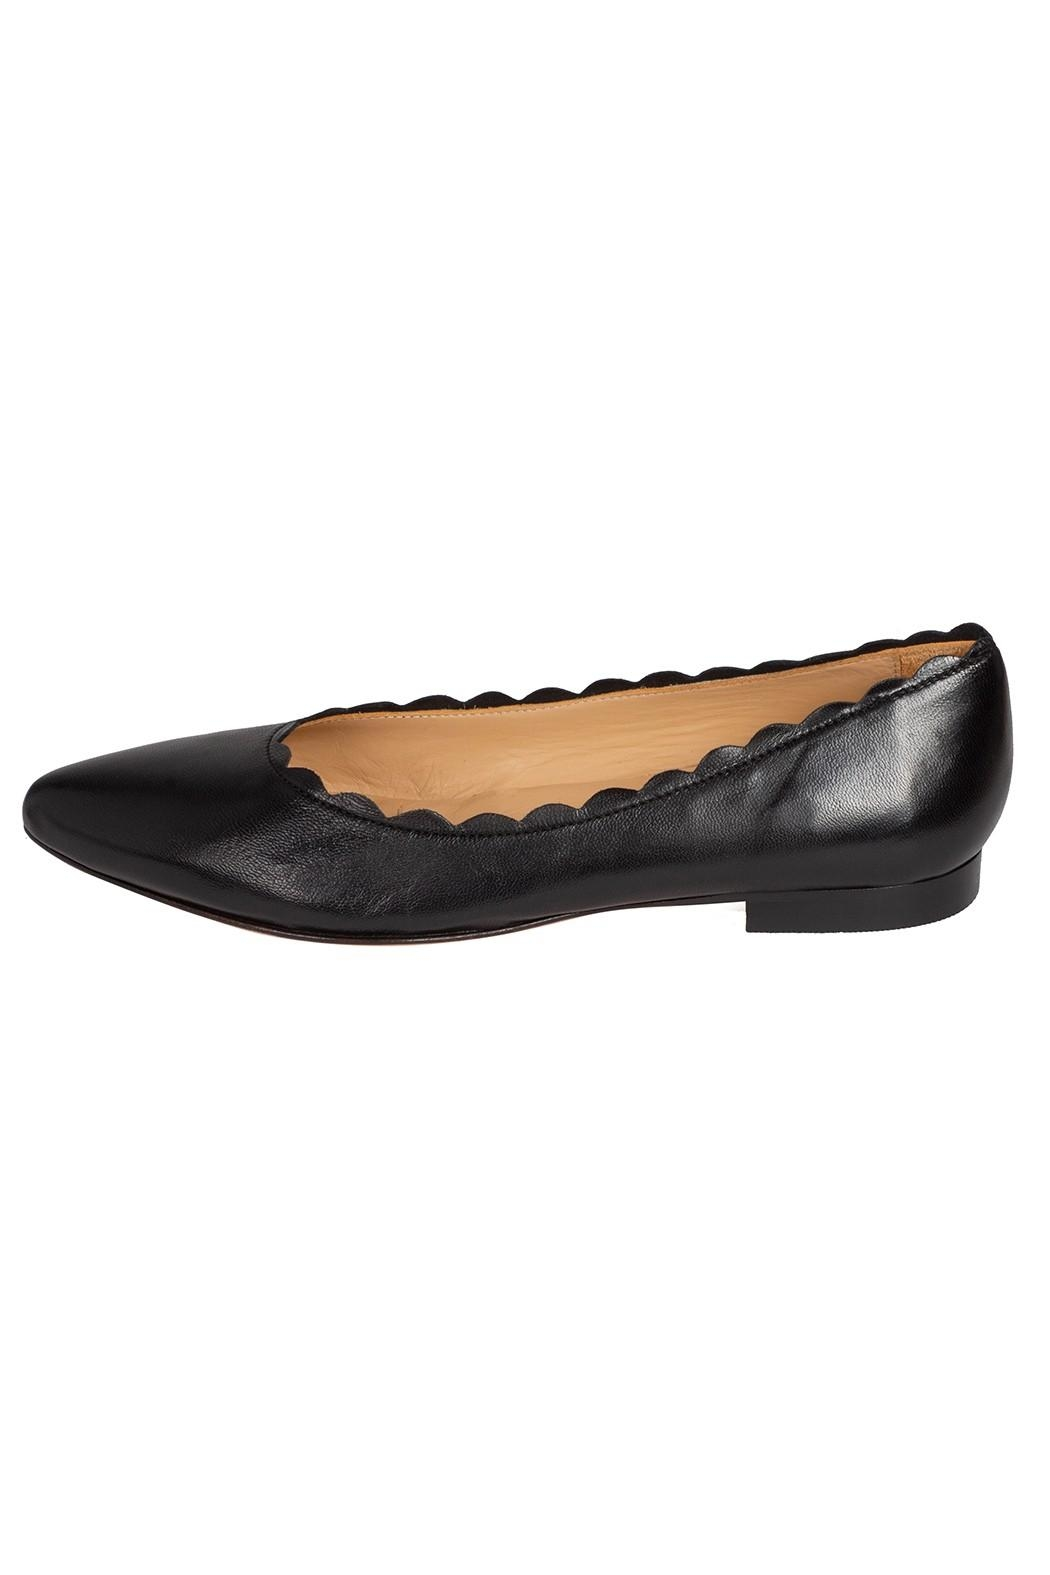 Pascucci Leather, Black, Ballet-Flats - Front Cropped Image